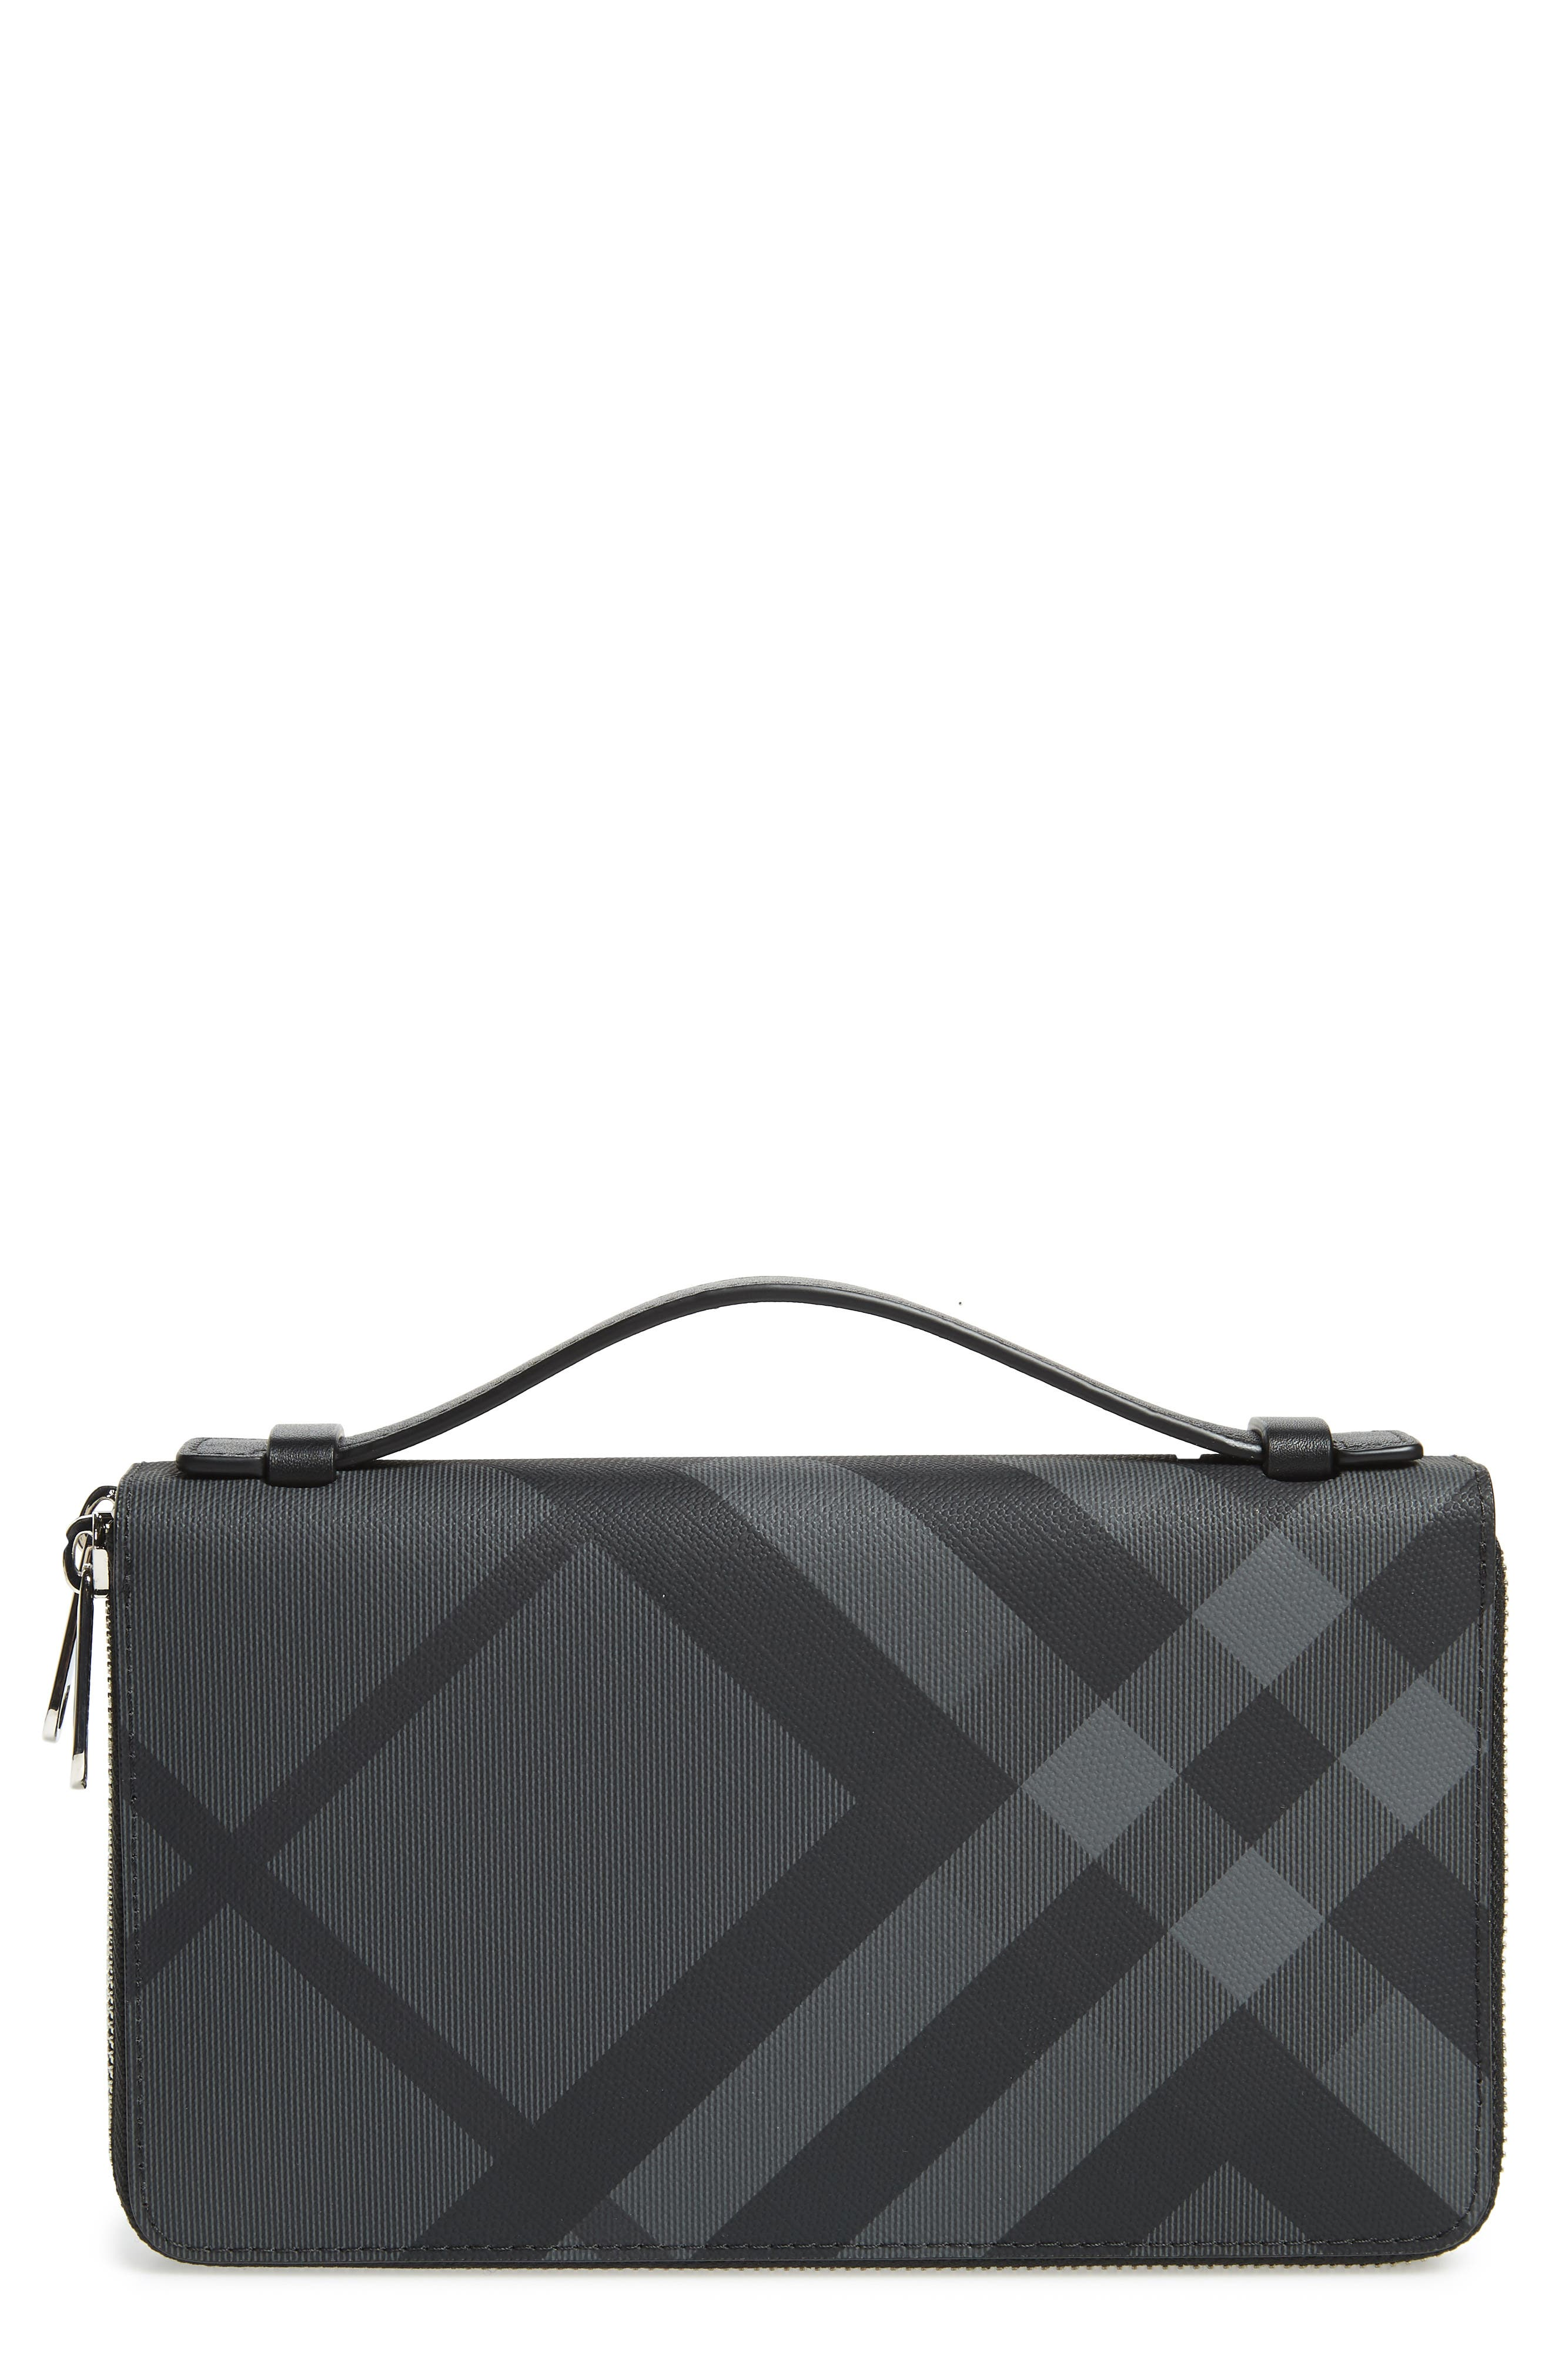 BURBERRY Reeves Zip Wallet, Main, color, CHARCOAL BLACK